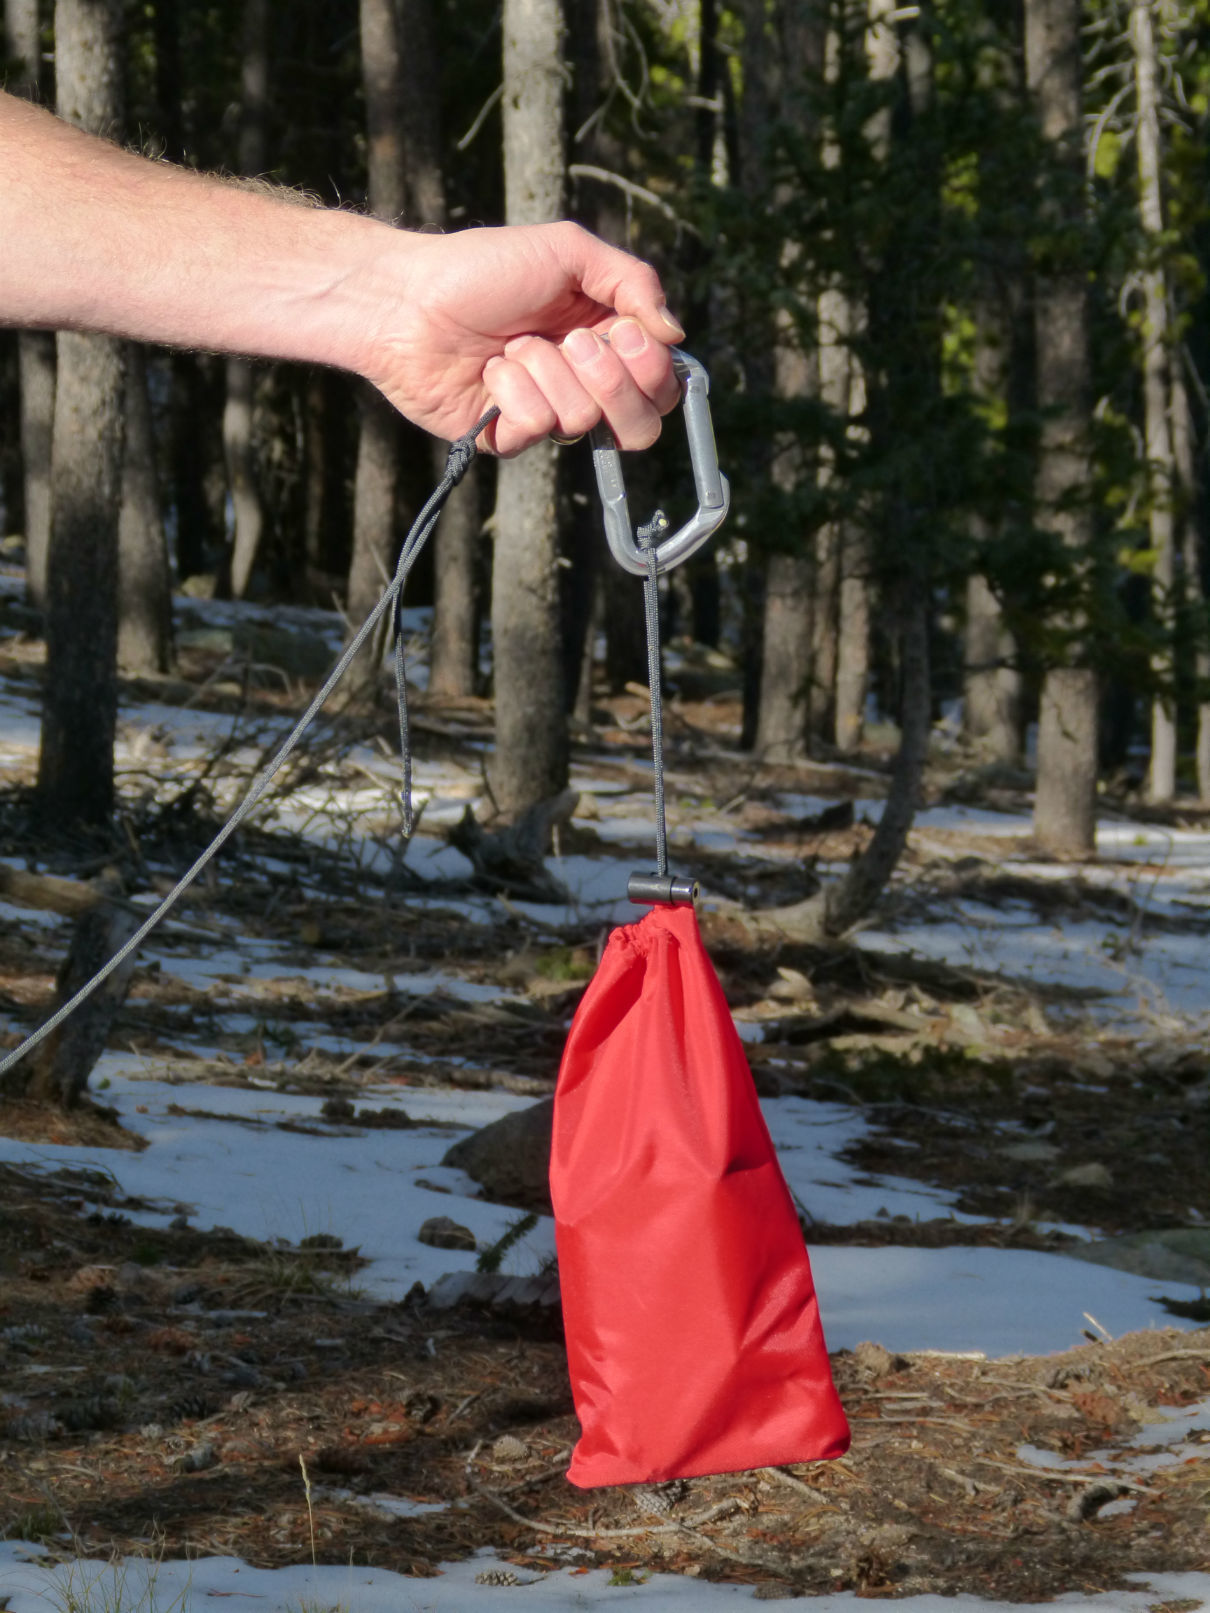 Durable Safety Throwbag